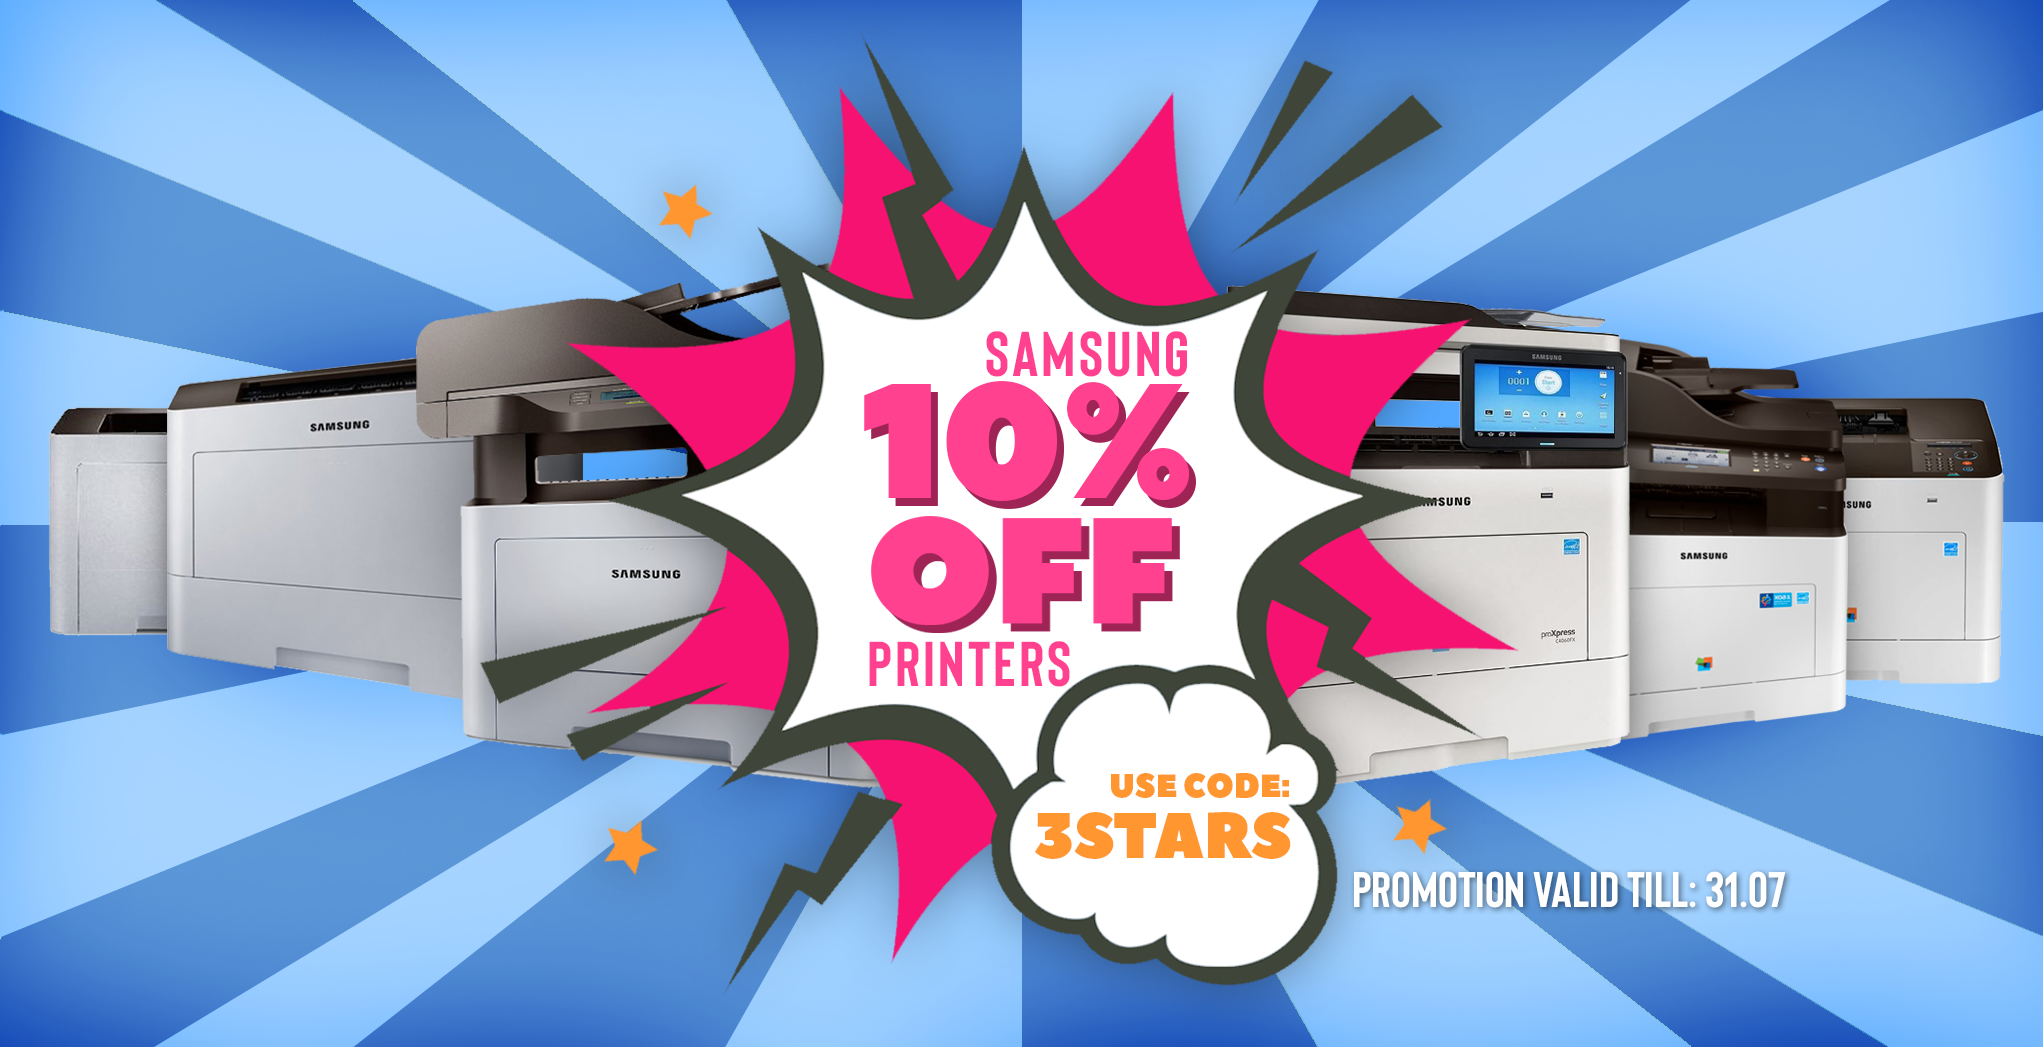 10% off selected Samsung printers - use code 3STARS